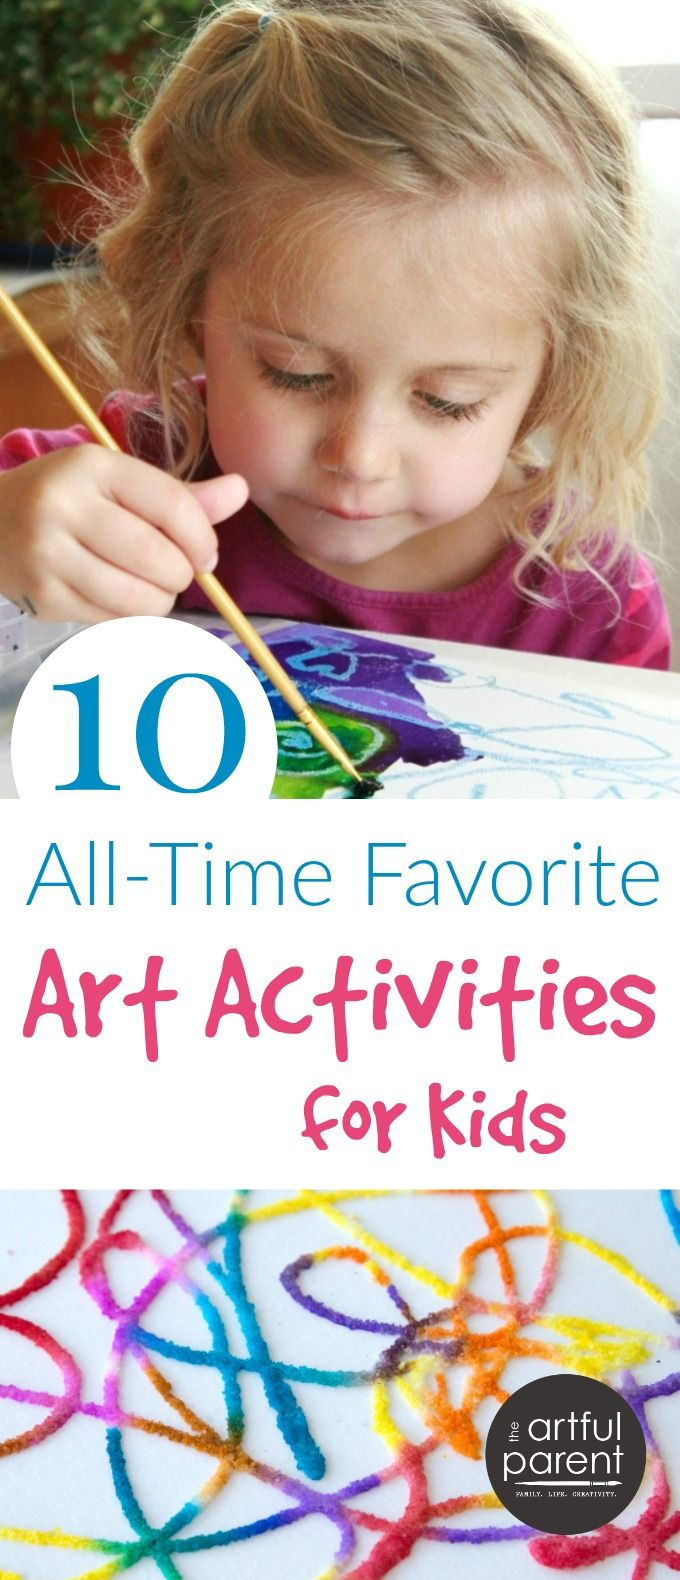 Our top 10, all-time favorite art activities for kids that are fun, open-ended, easy, and look great. Everything on this list is a winner for most ages!